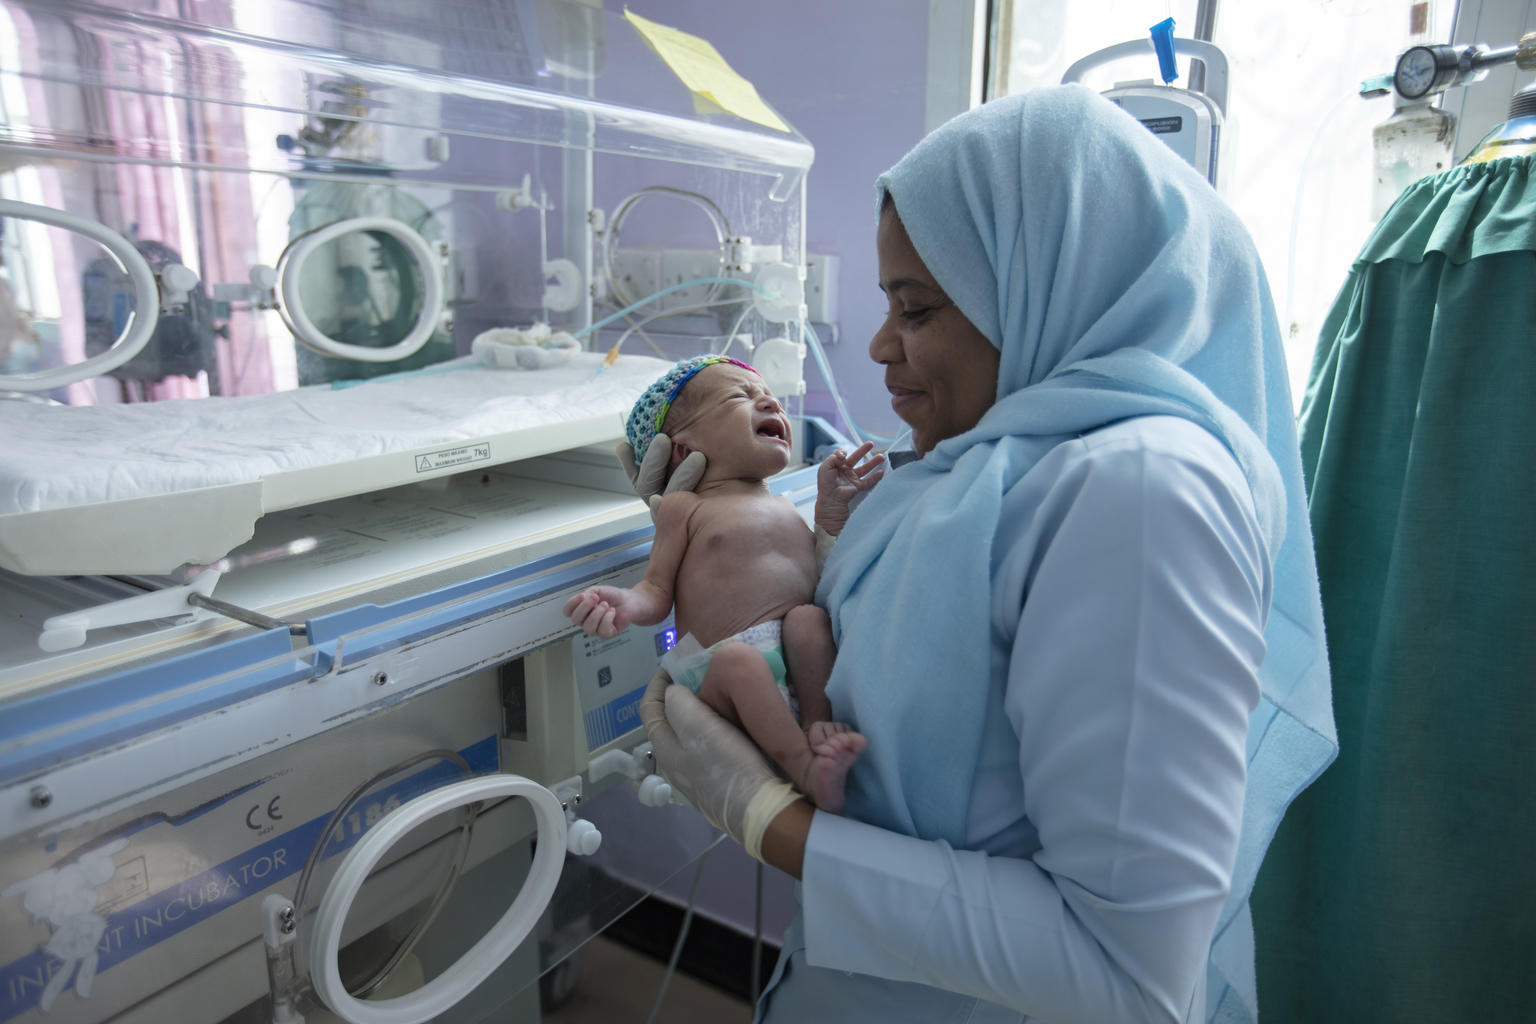 On 23 October 2019, nurse Hindia Al-Zoubah checks on a 5-day-old baby girl who is making good progress in the neonatal intensive care unit at the Al Sabeen Maternal Hospital in Sana'a, Yemen.